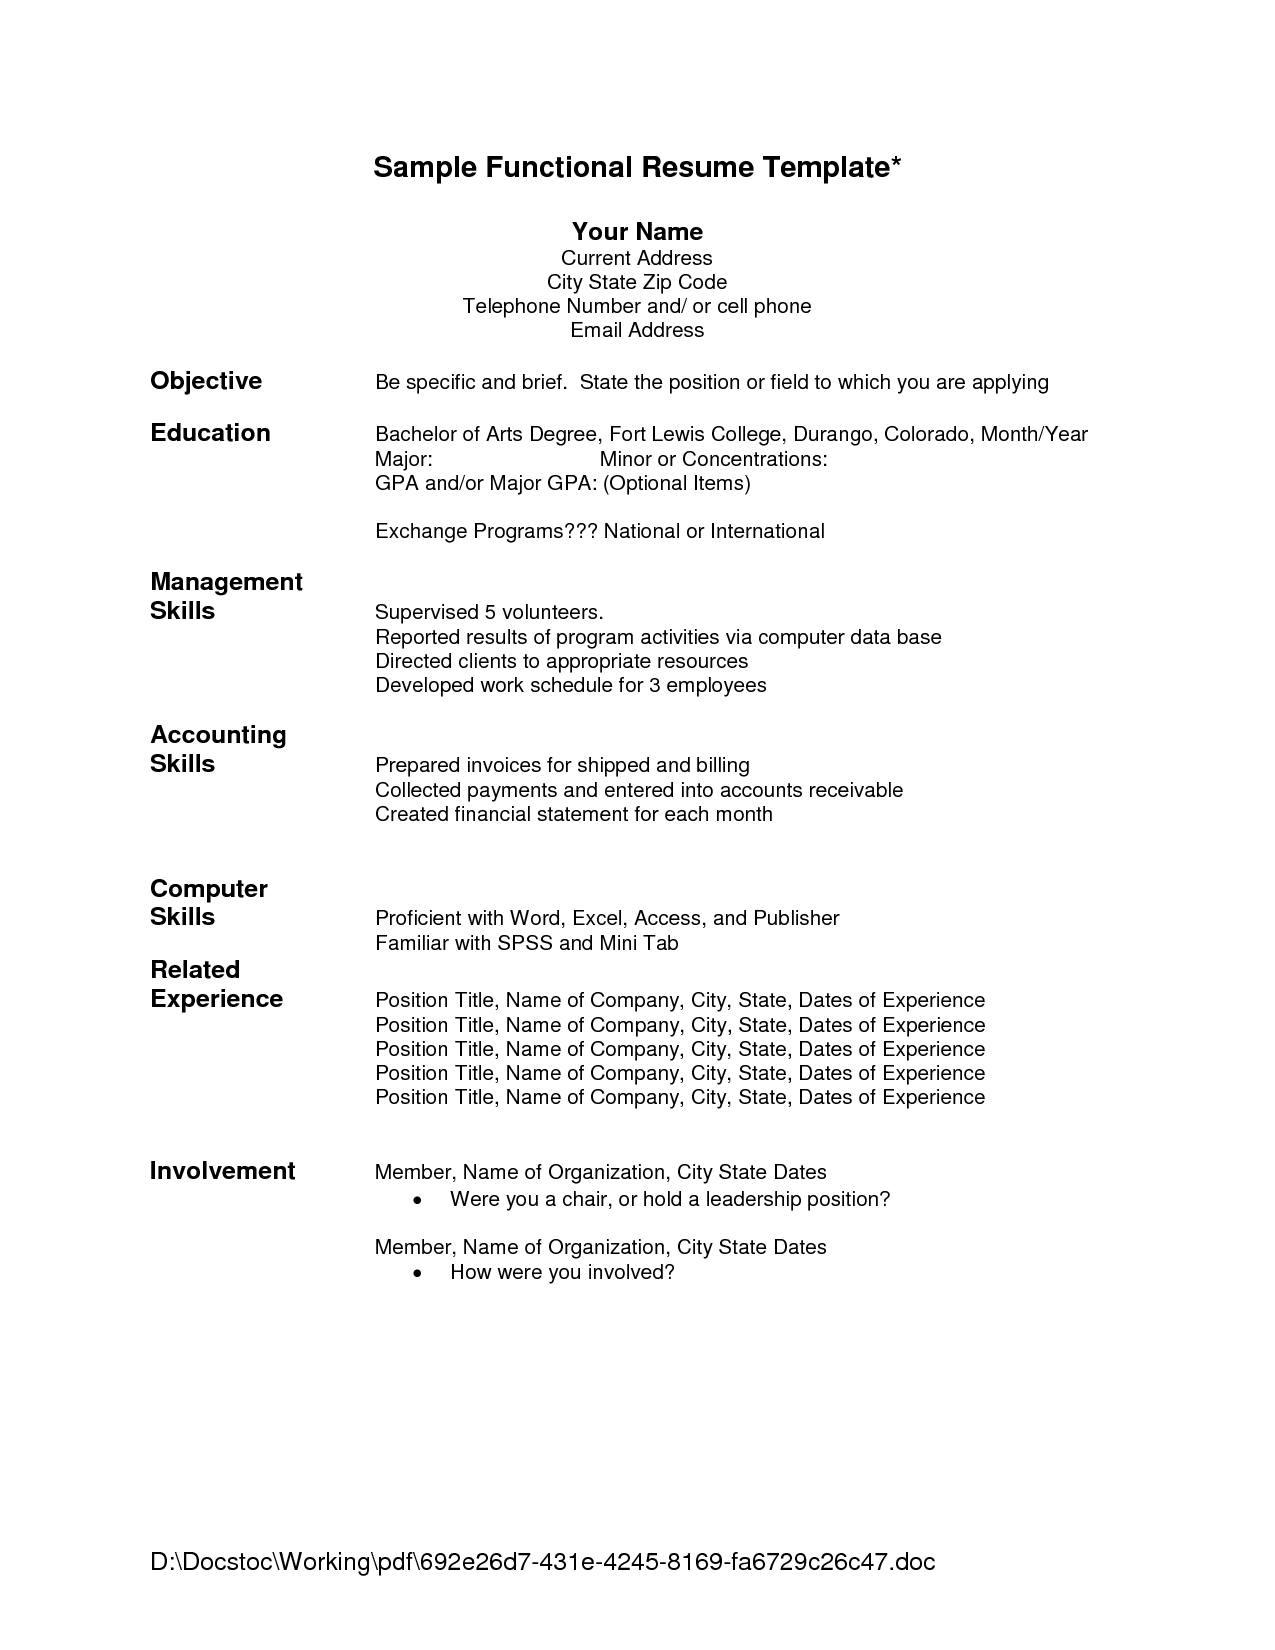 Find Resume Free Sample One Page Functional Resume Google Search